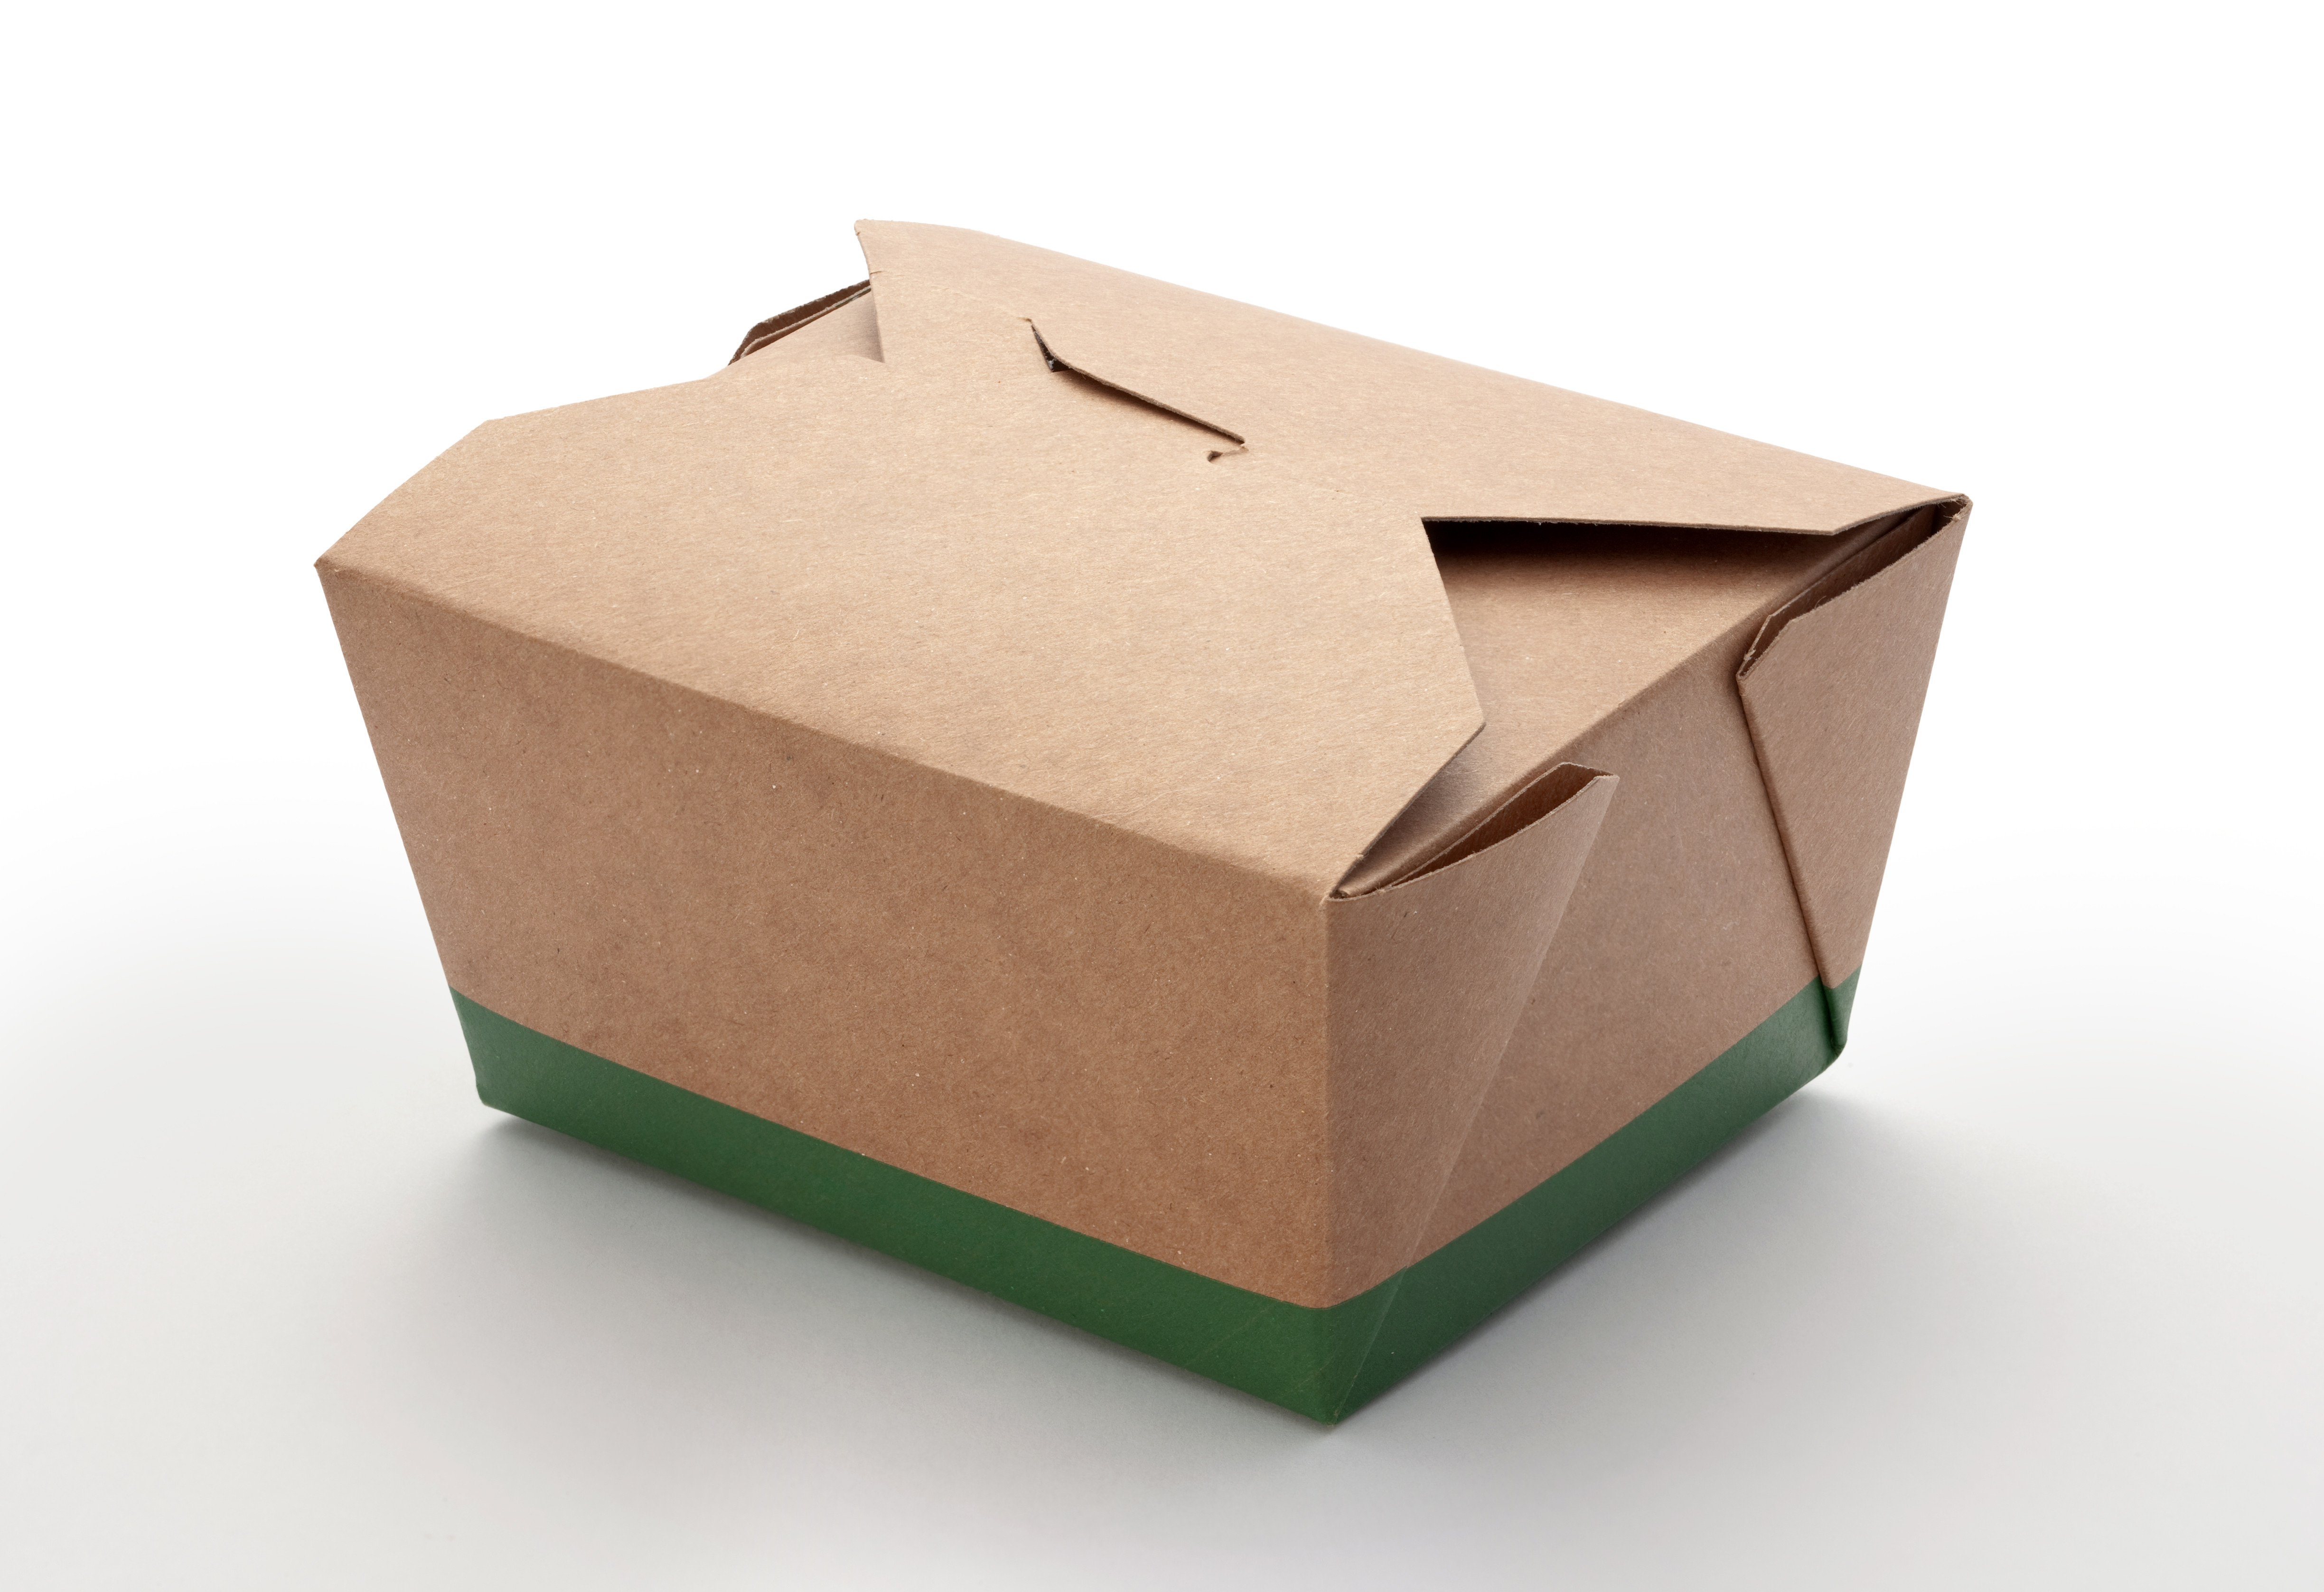 Catering Drop Off / Food Delivery